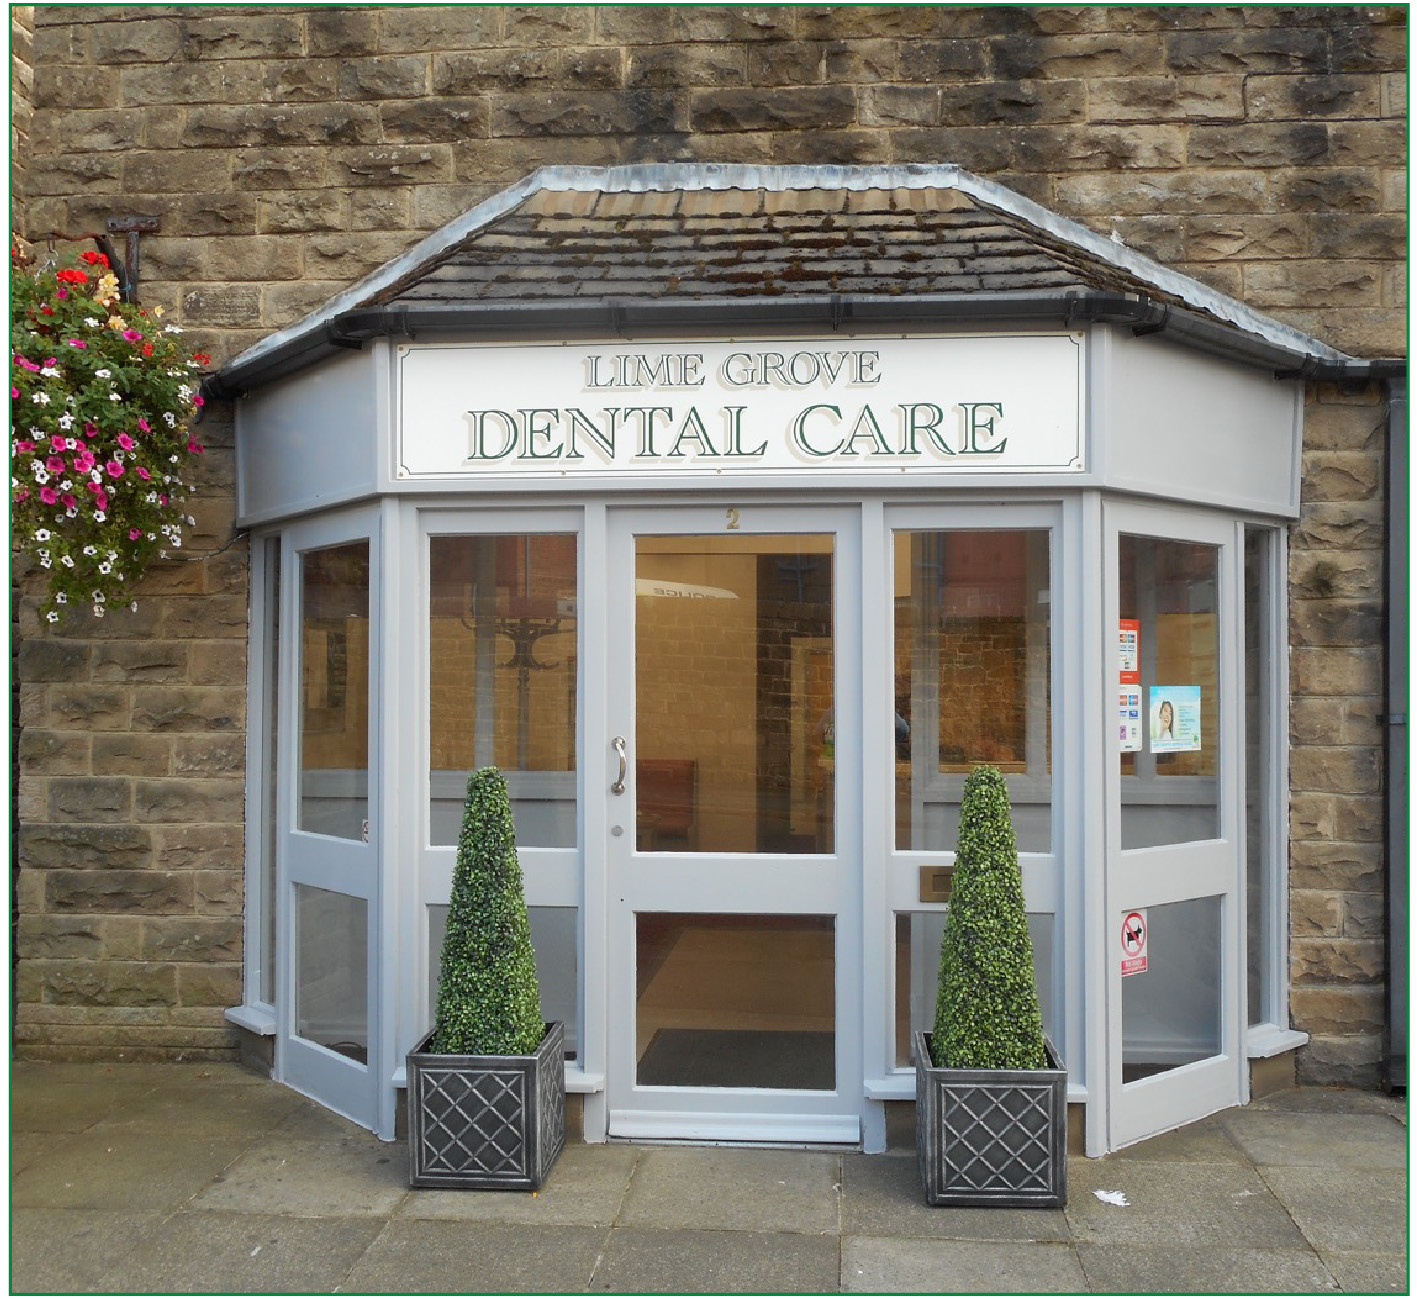 Limegrove Dental Care - Practice Front